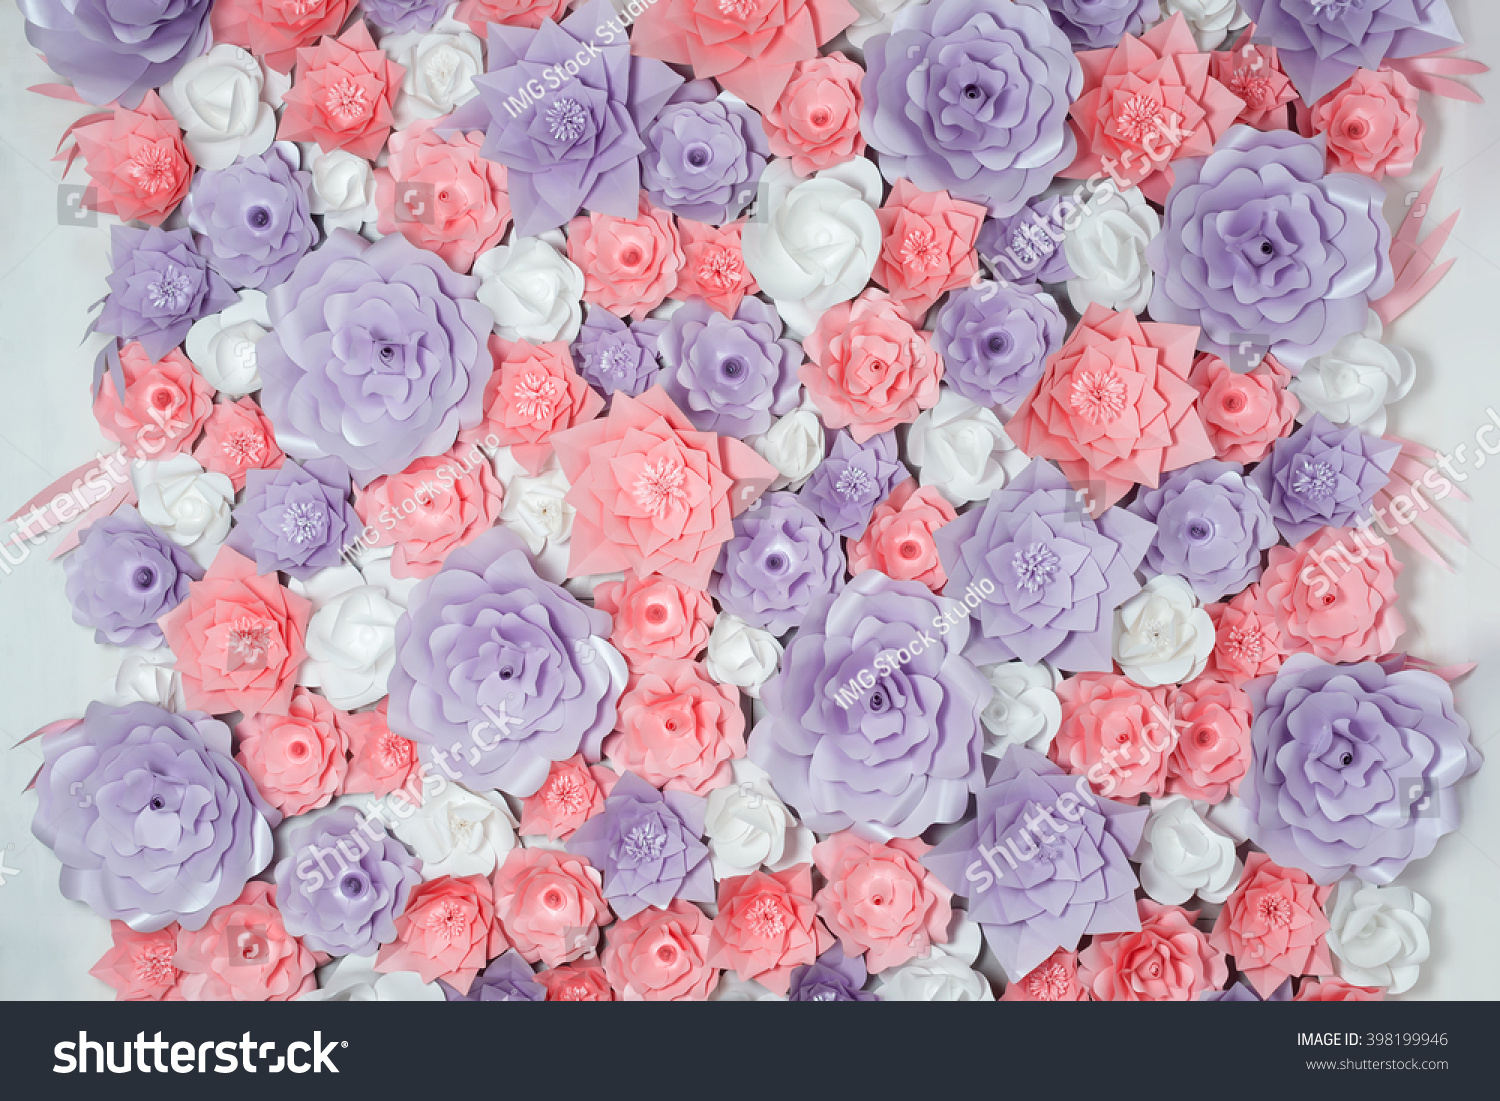 Royalty Free Colorful Paper Flowers Background 398199946 Stock